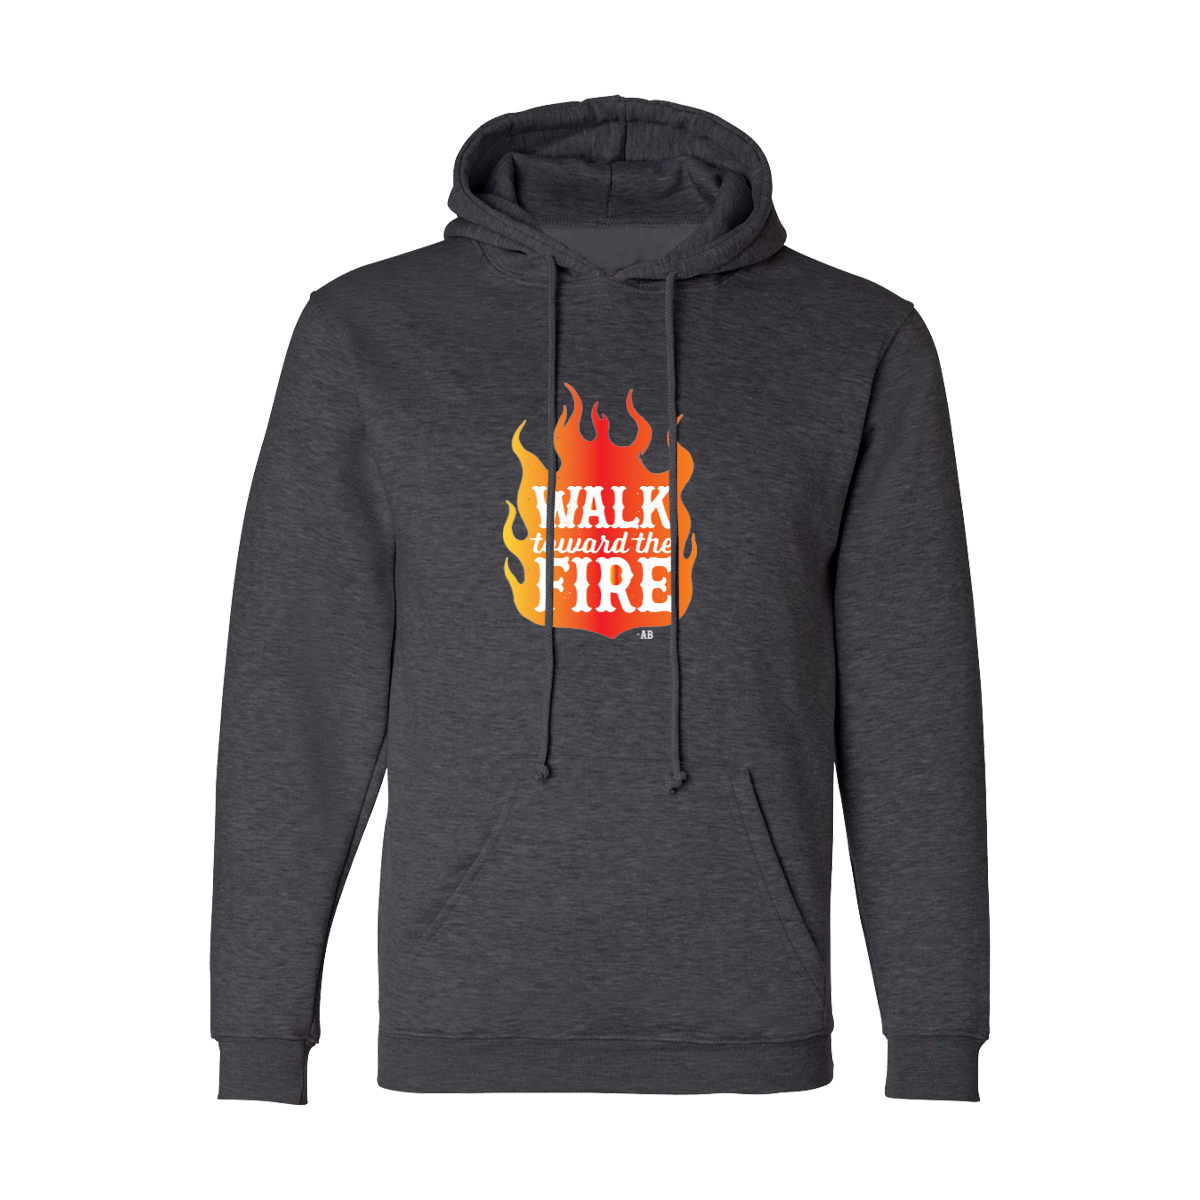 Walk Toward the Fire Hoodie Sweatshirt